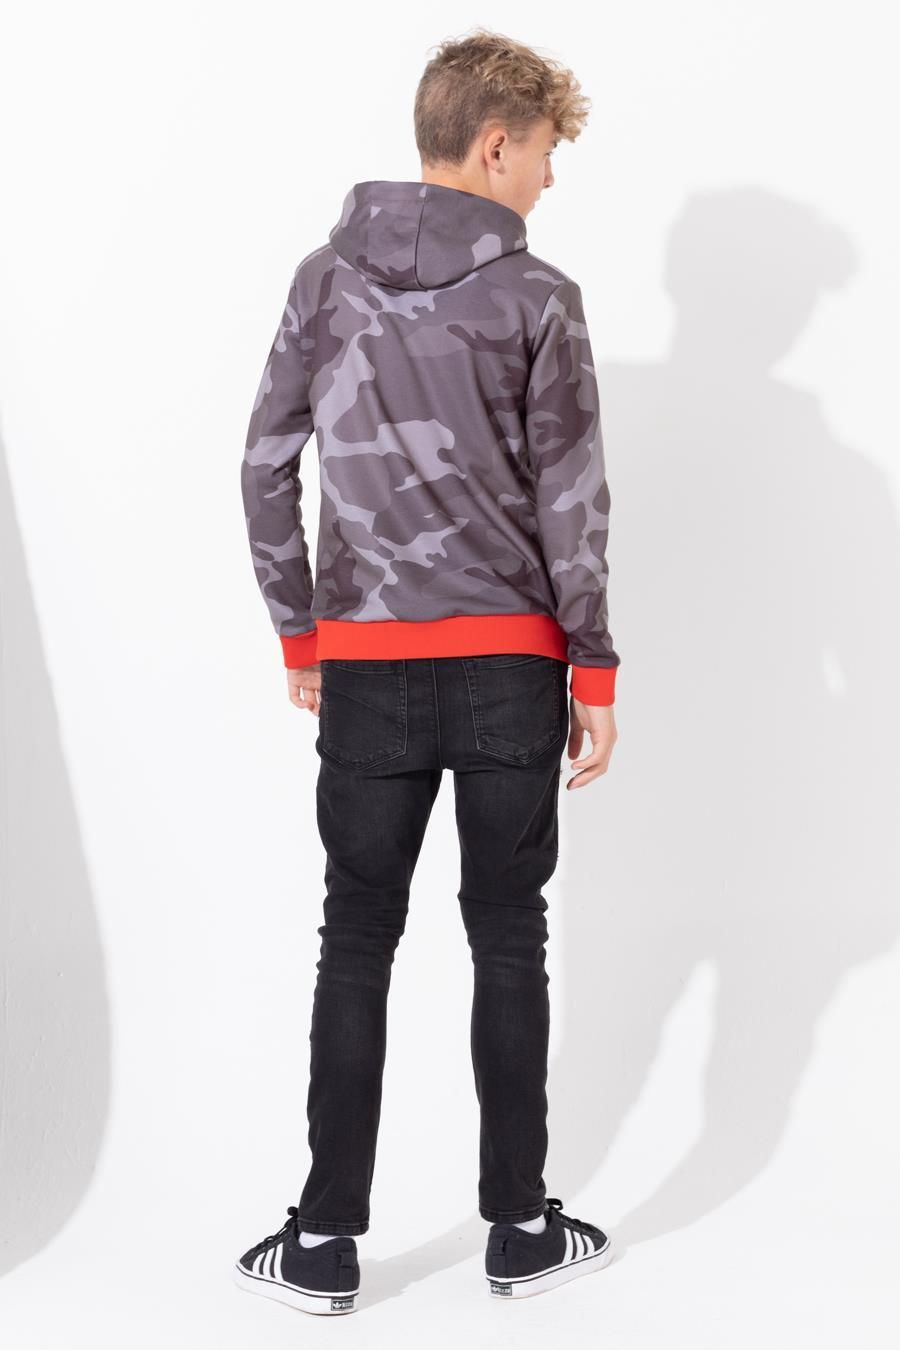 Hype Shadow Camo Kids Pullover Hoodie 9-10Y